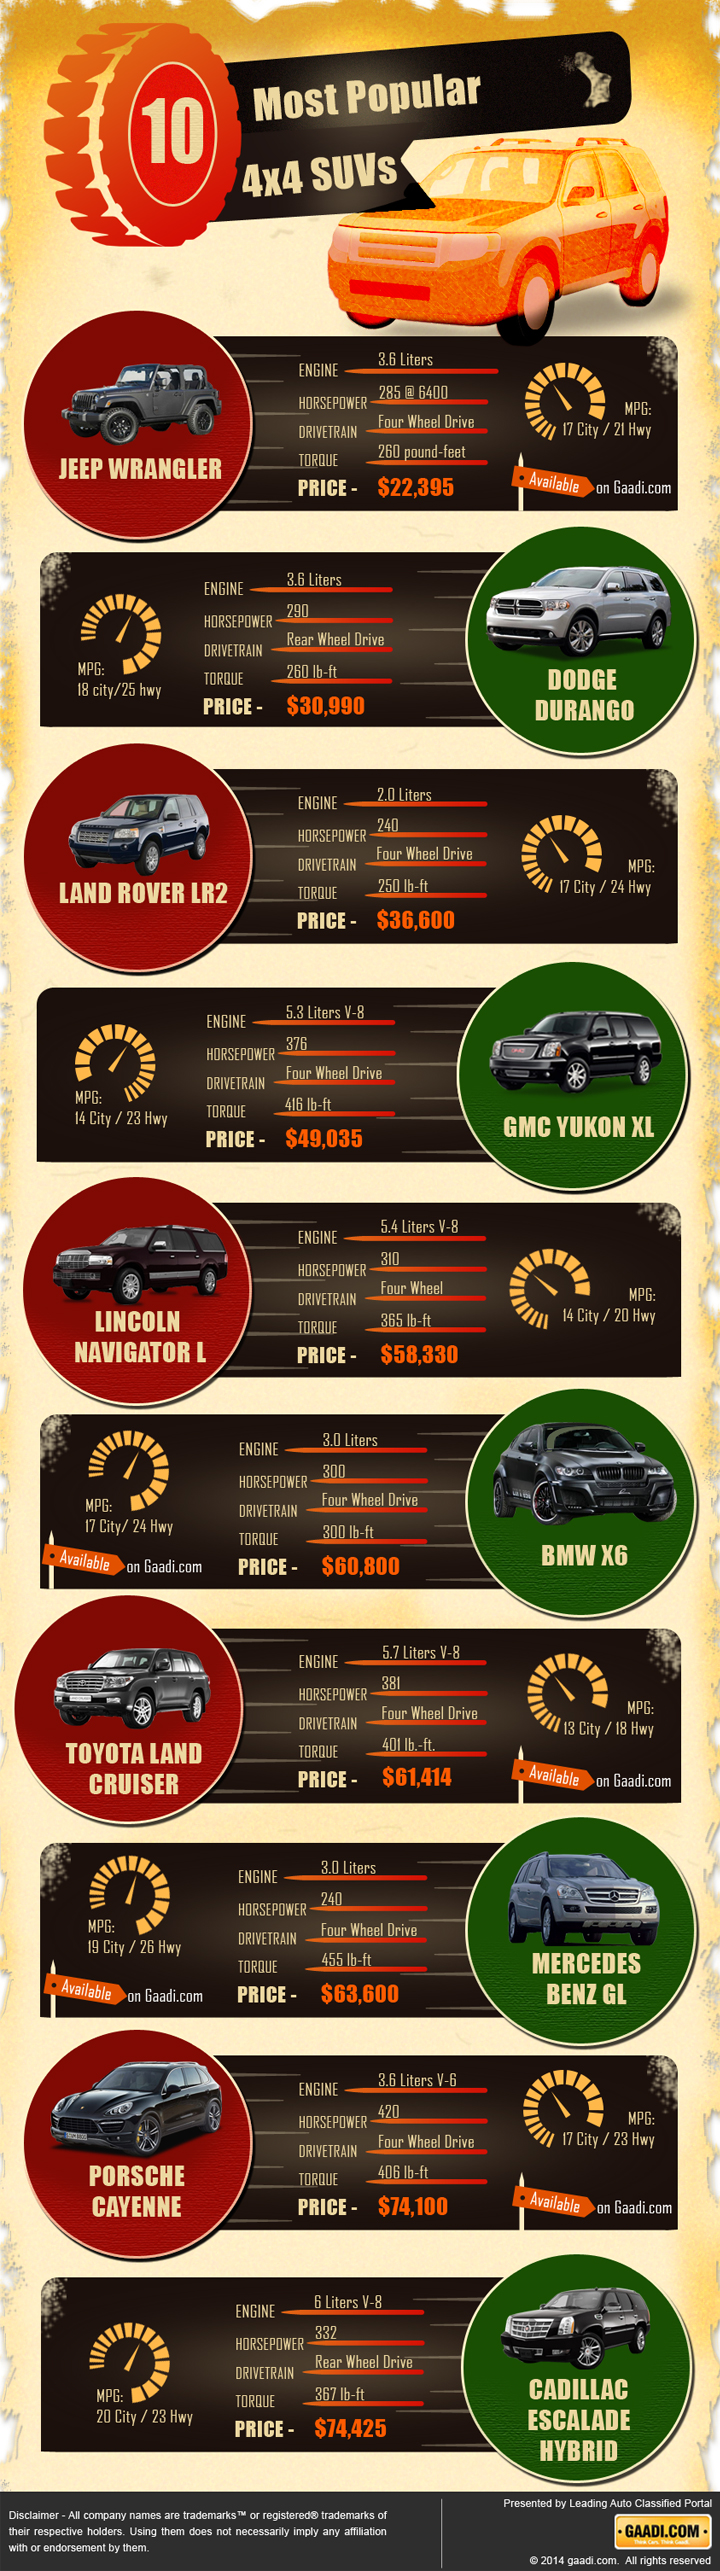 10-most-popular-suvs-infographic-plaza